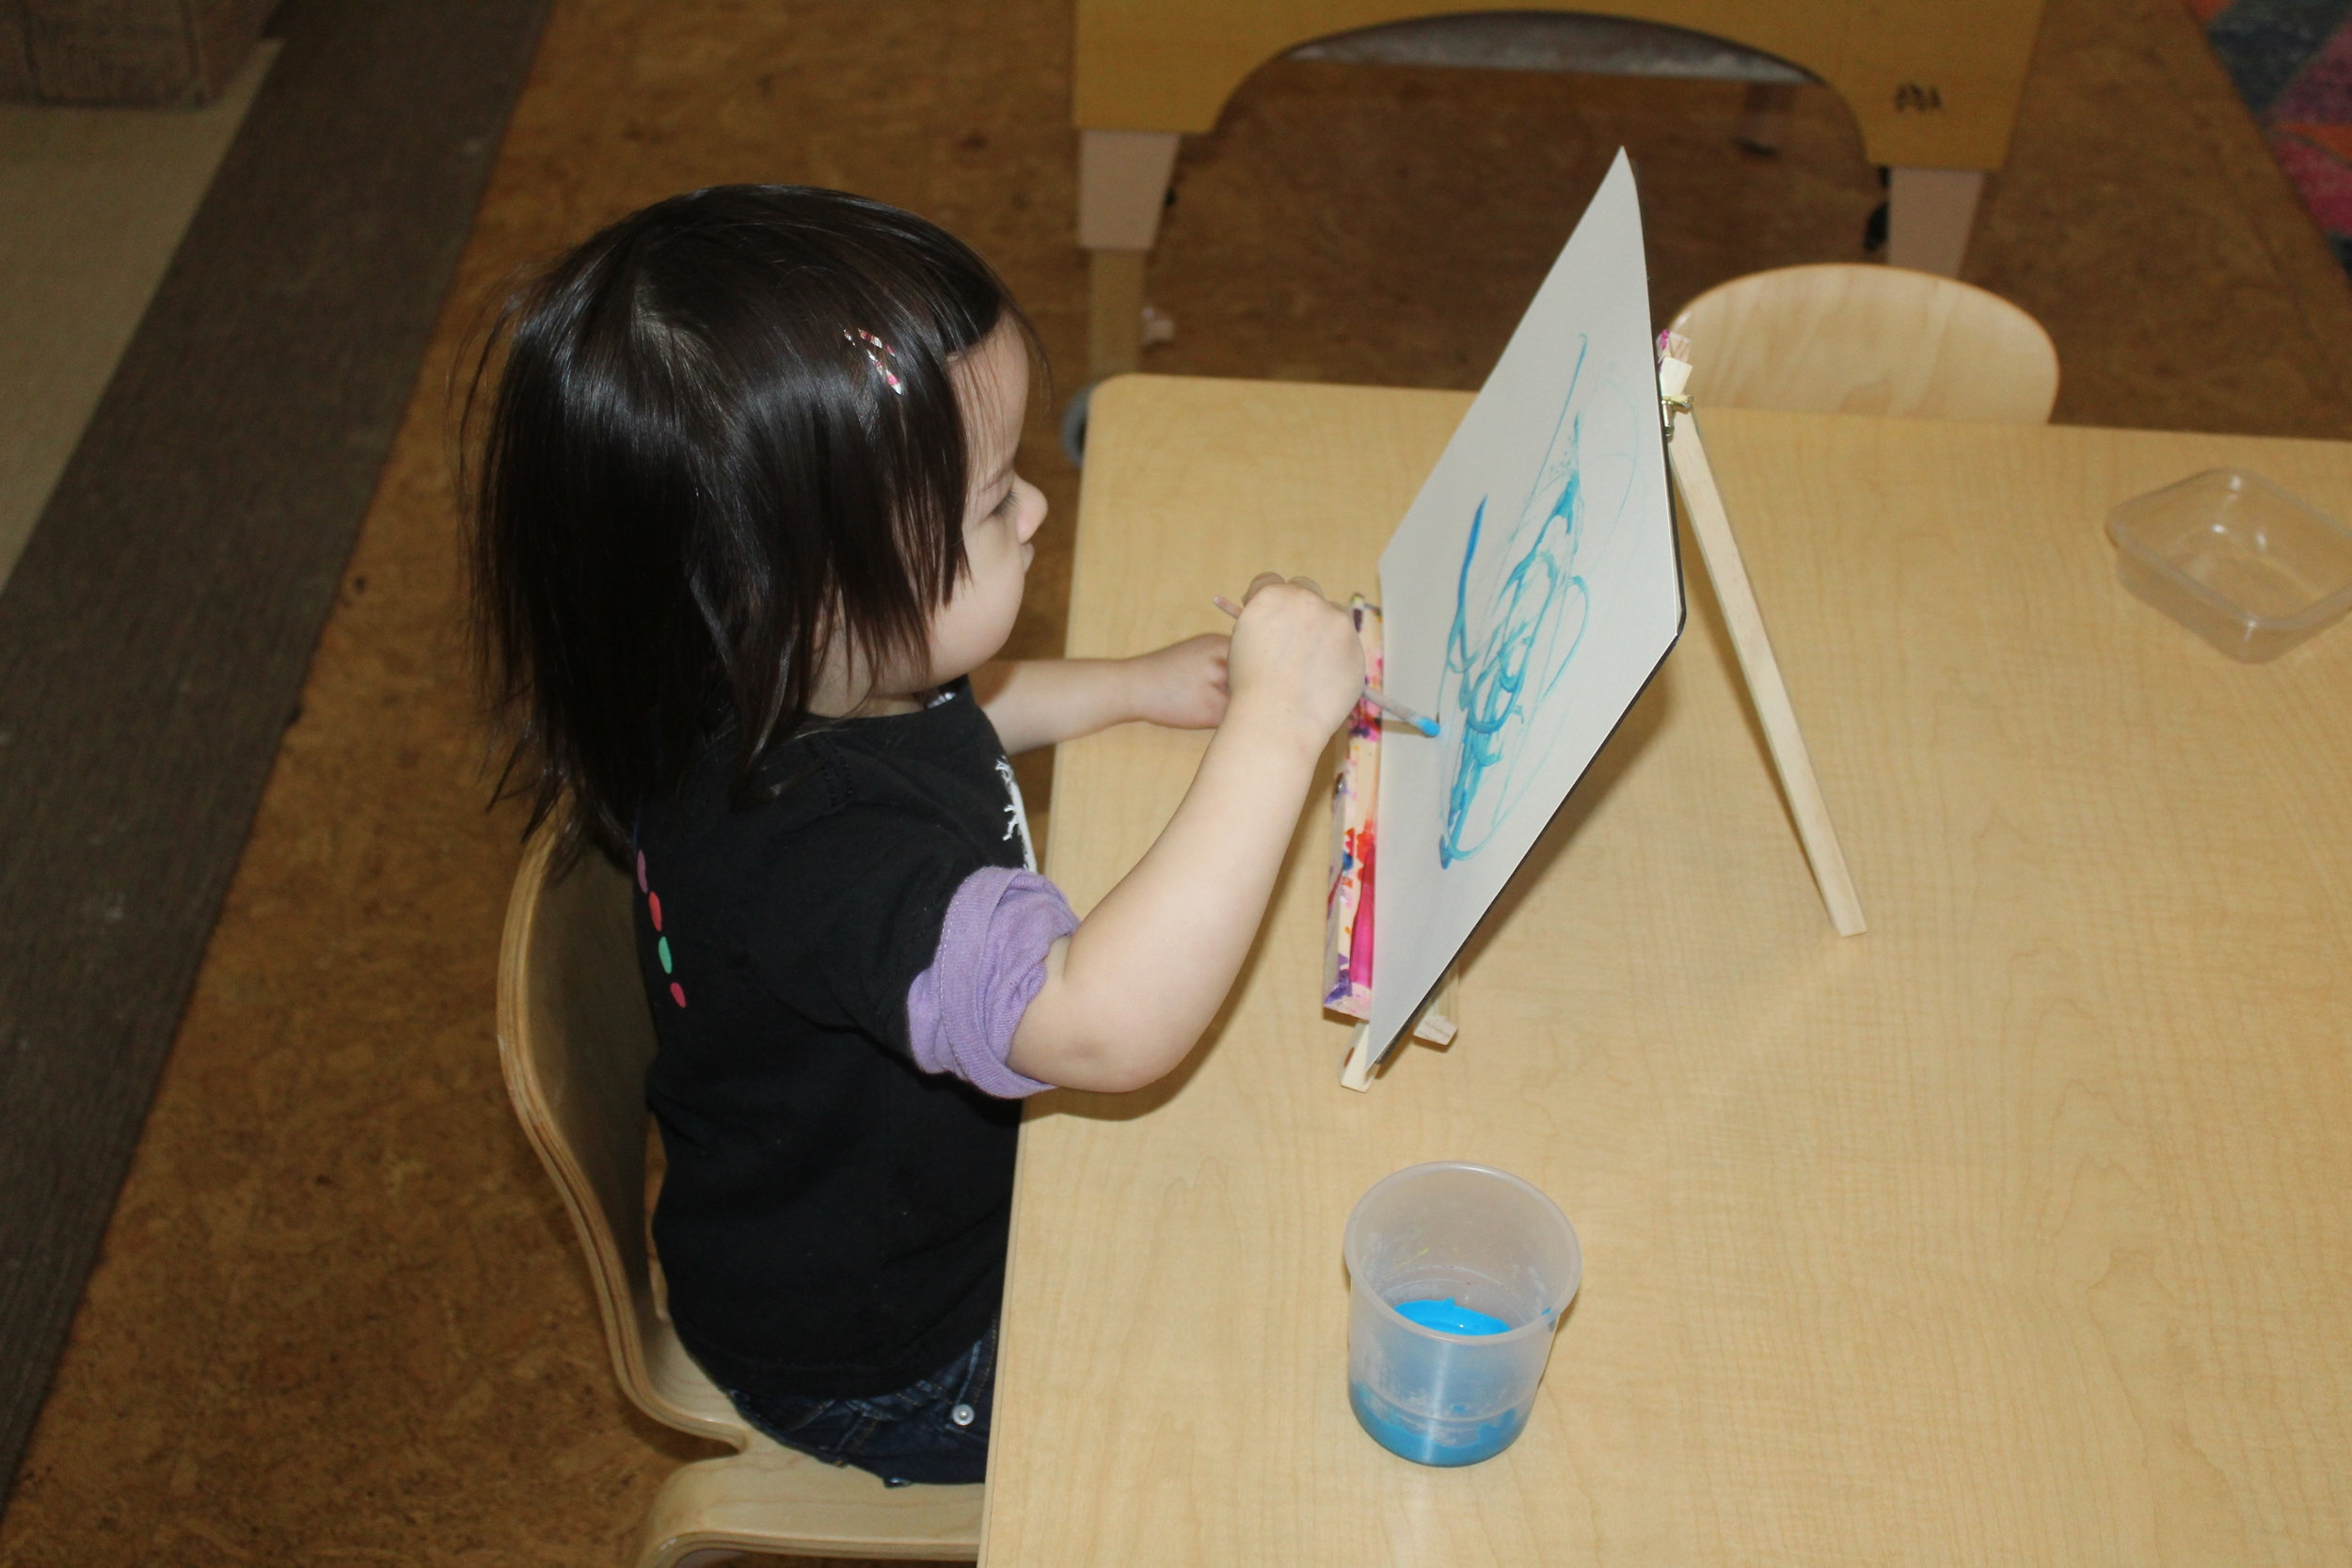 The children have been enjoying painting at the small easel.They are exploring and discovering new ways to move their arms to create different brushstrokes. I enjoy observing as they maneuver the paintbrush to create an art piece. Each brushstroke is dissimilar from one another. As they move their hand, they create delicate lines; some represent a person or an object.